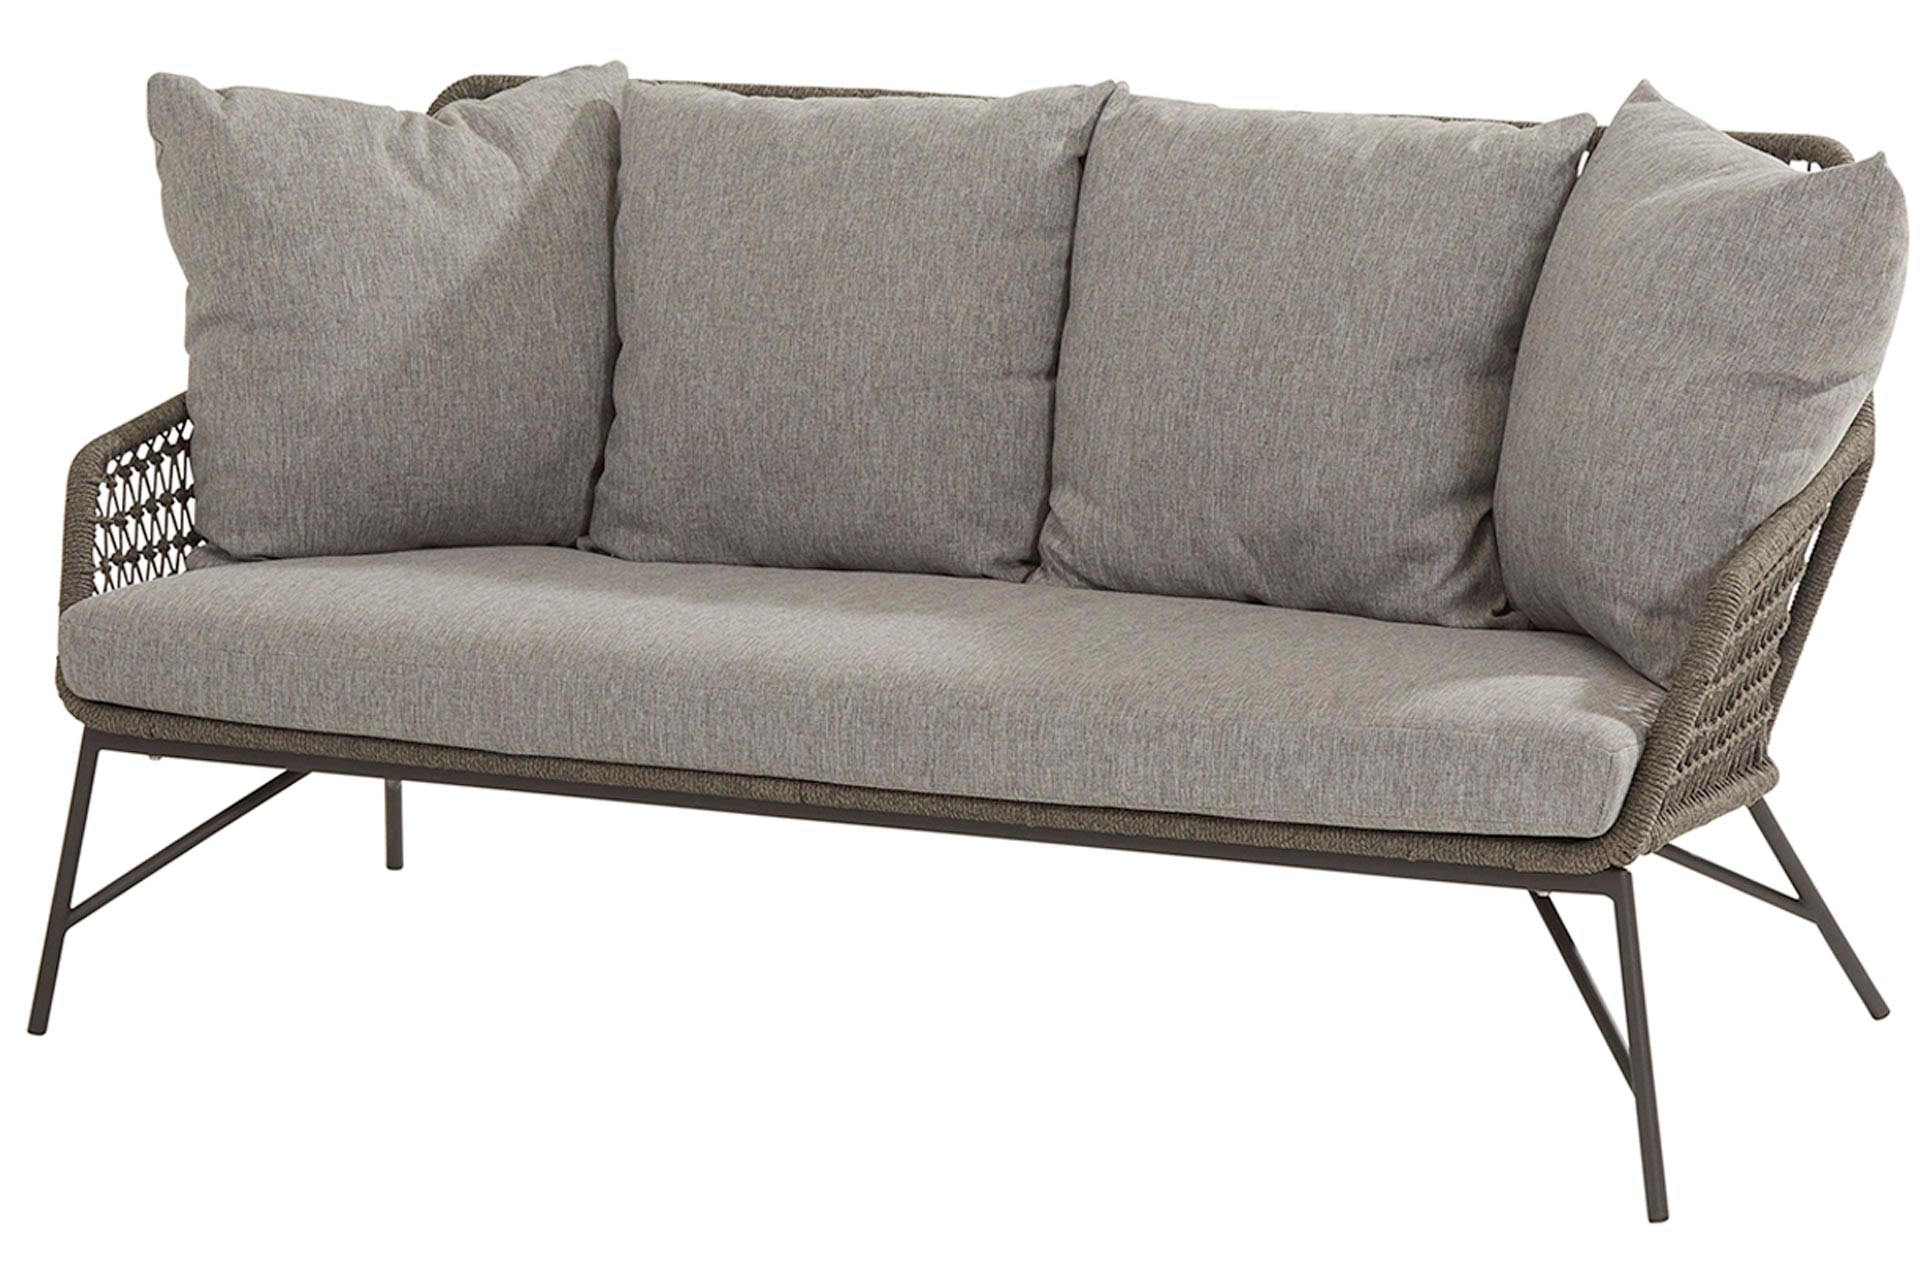 Babilonia living bench 2.5 seaters mid grey knotted with 5 cushions